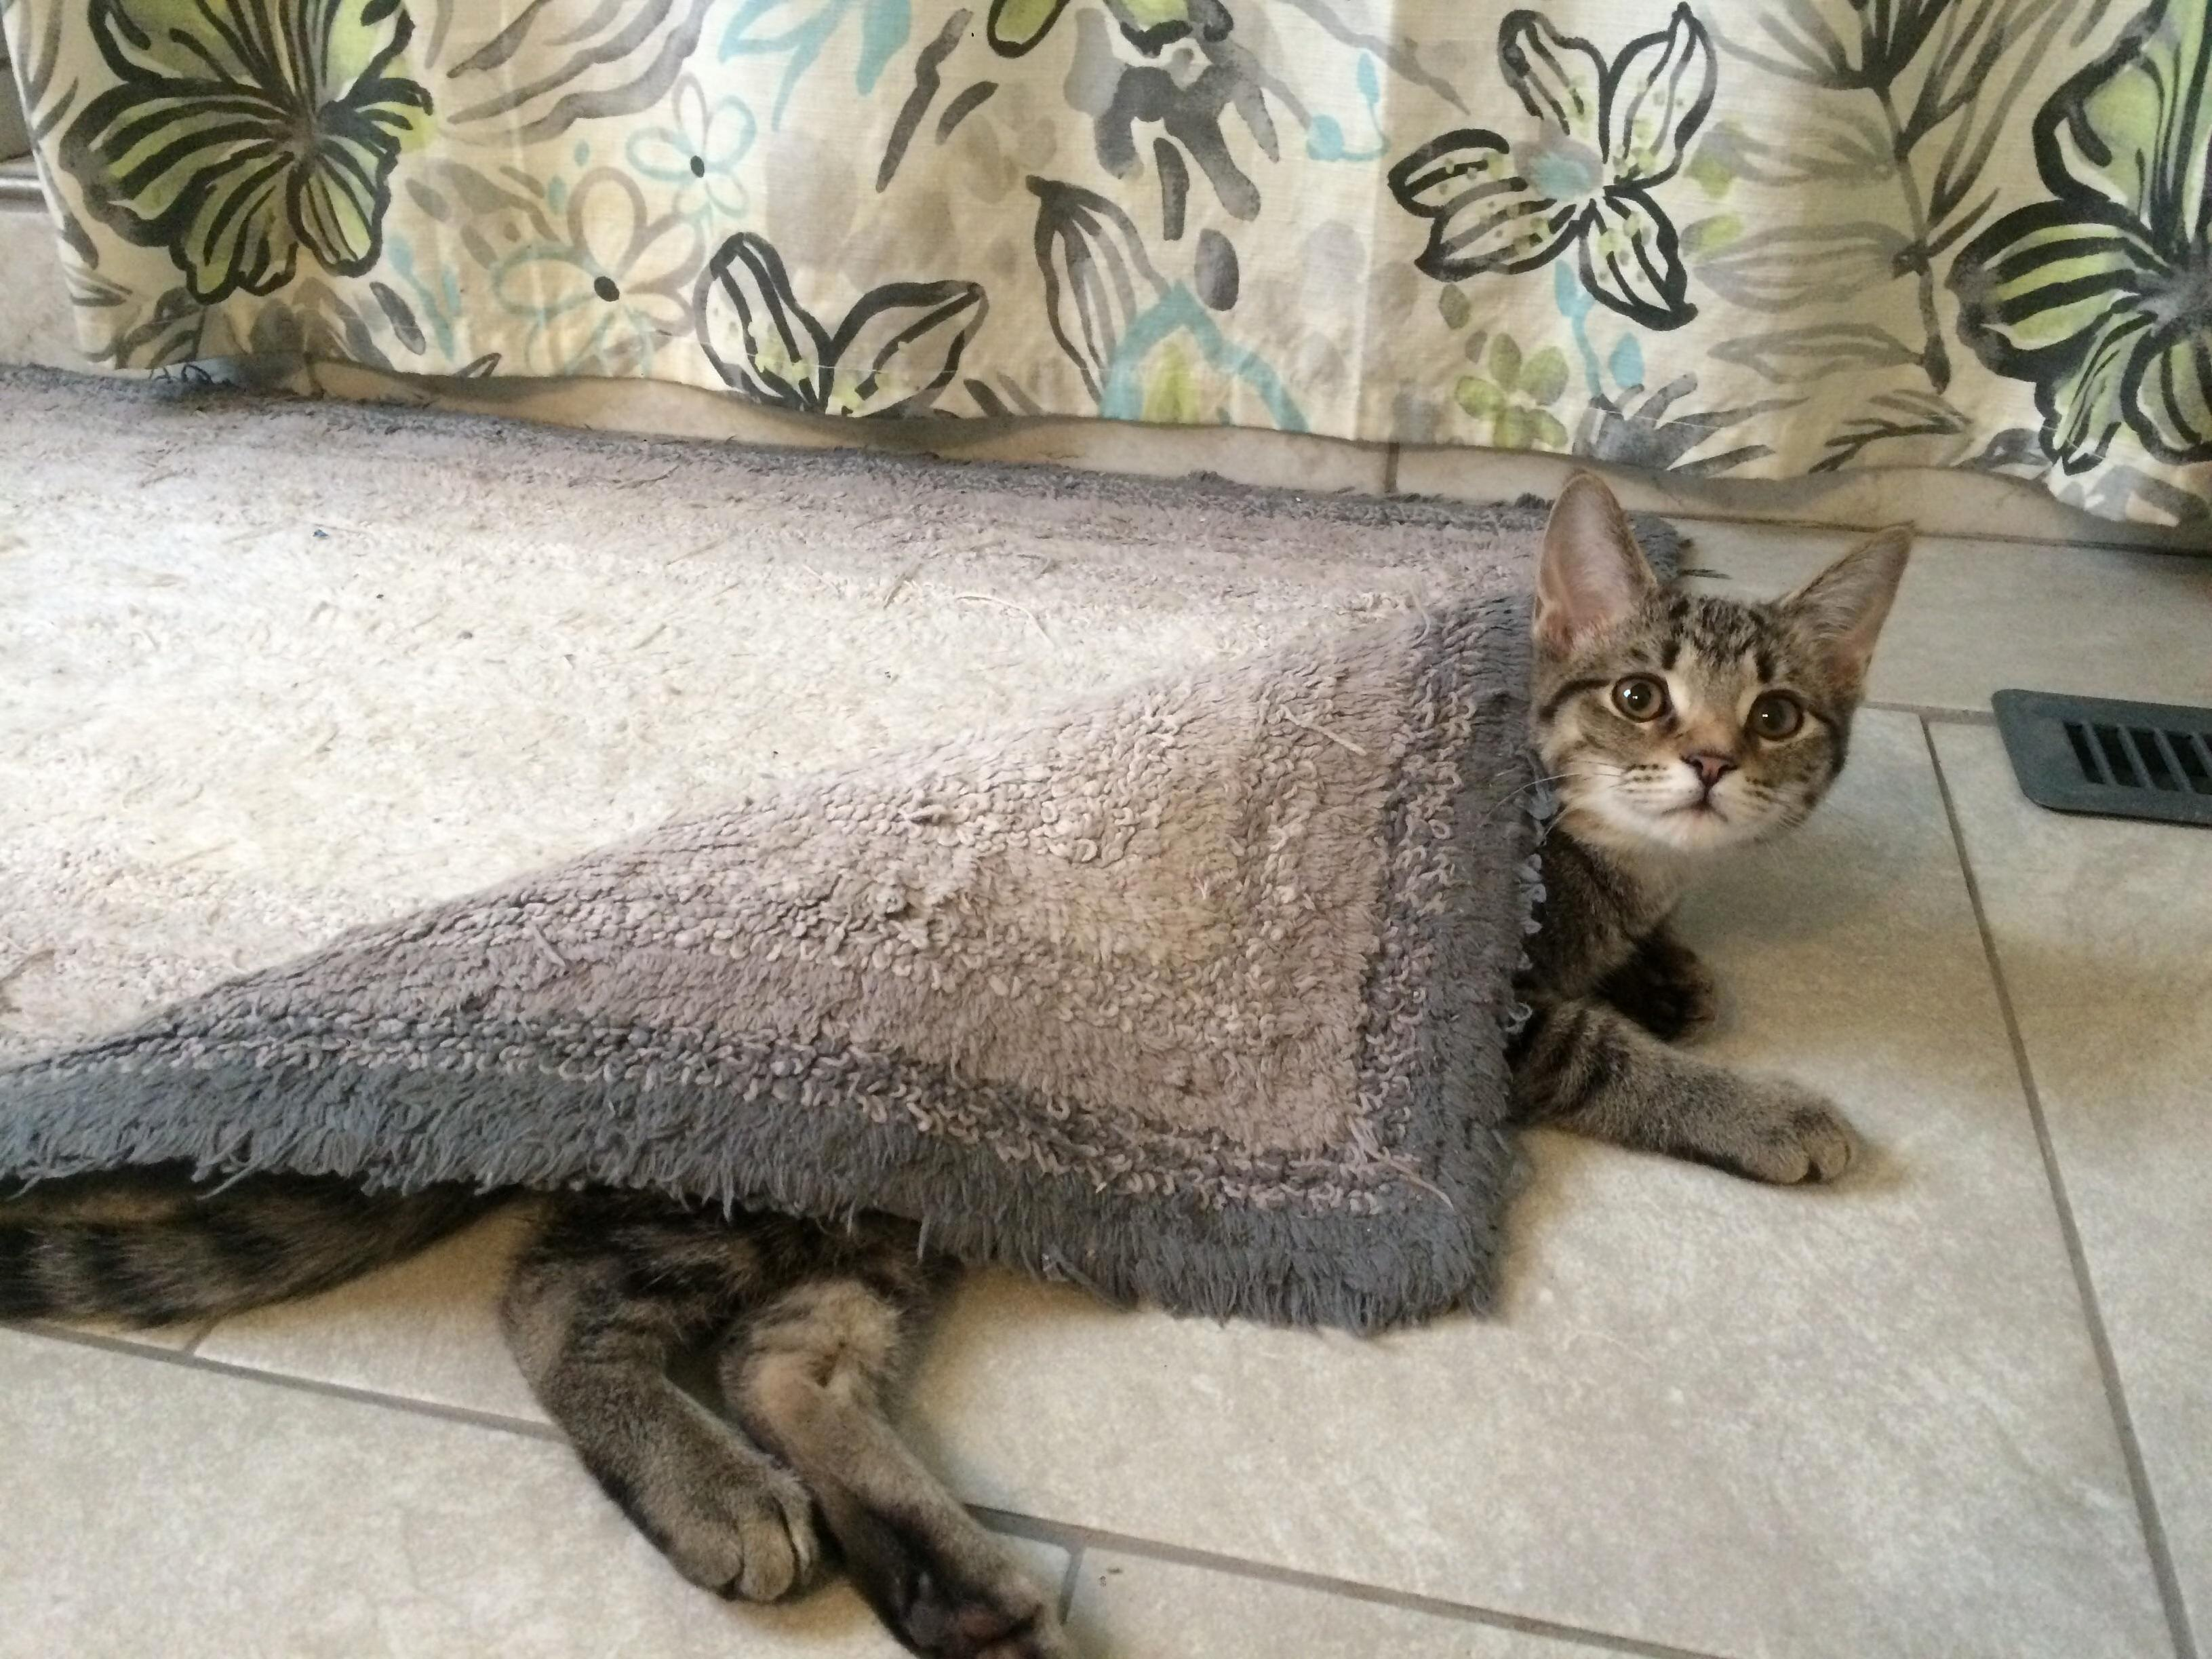 Heated floors in our bathroom, kitten knows its warmer underneath and wraps up like a blanket.